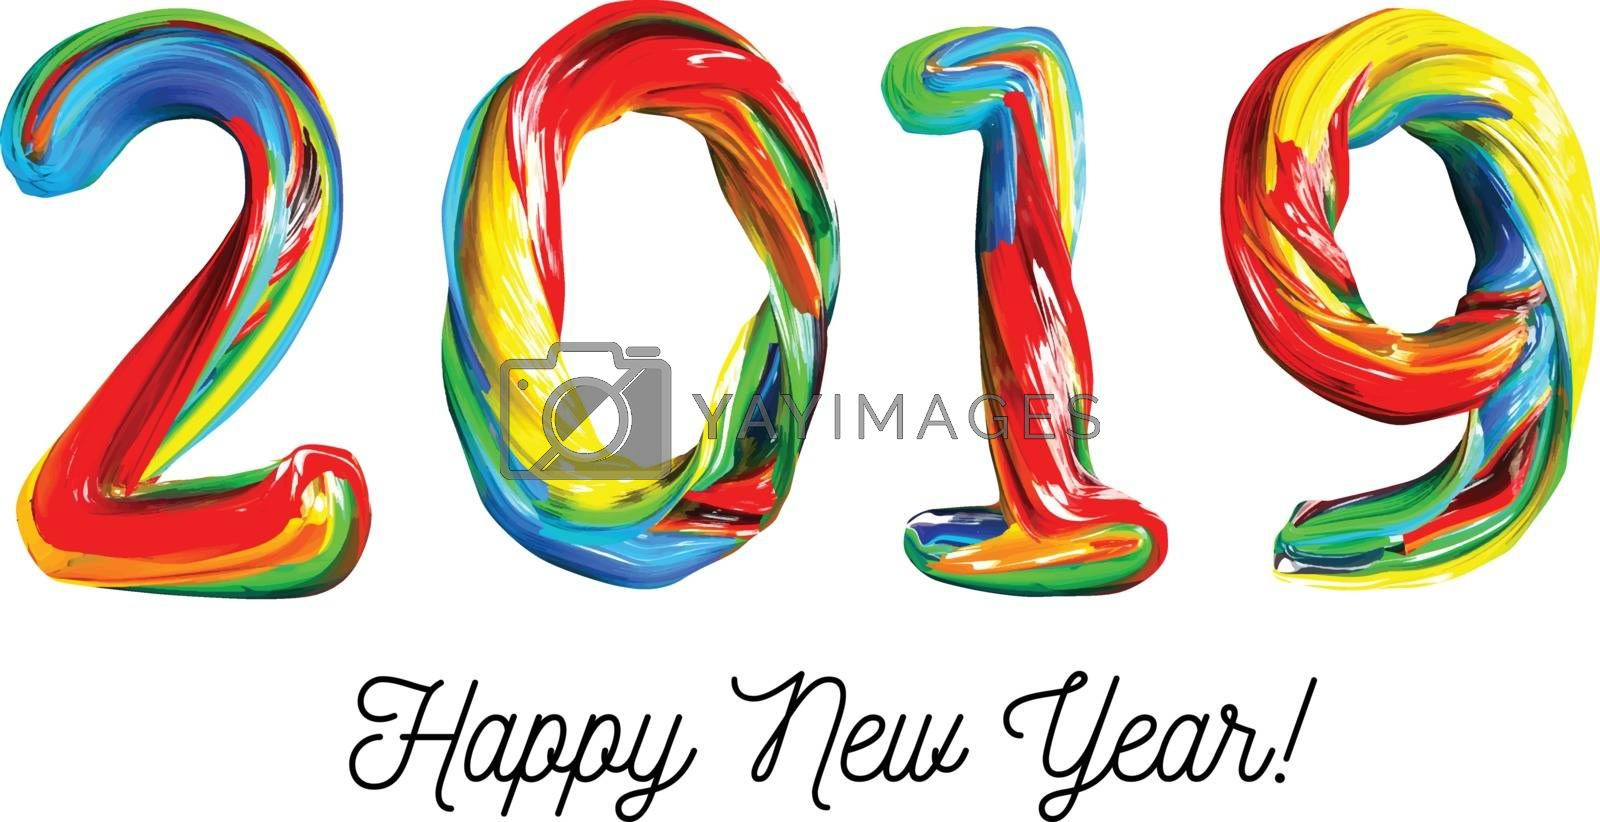 Colorful 3d text 2019. Congratulations on the new year 2019. Vector illustration on white background